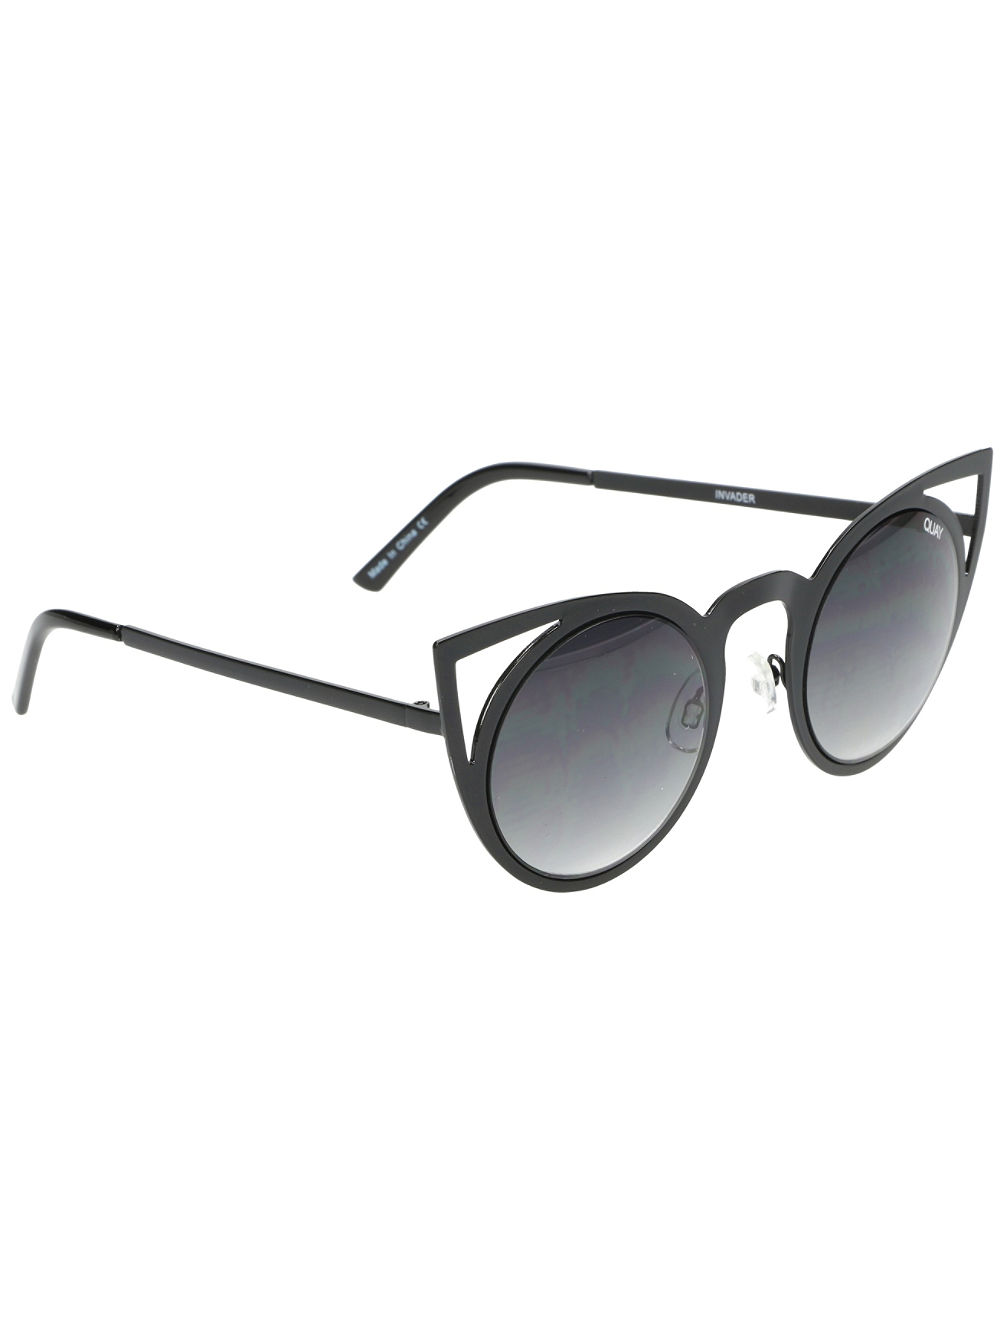 Invader Black Smoke Sonnenbrille